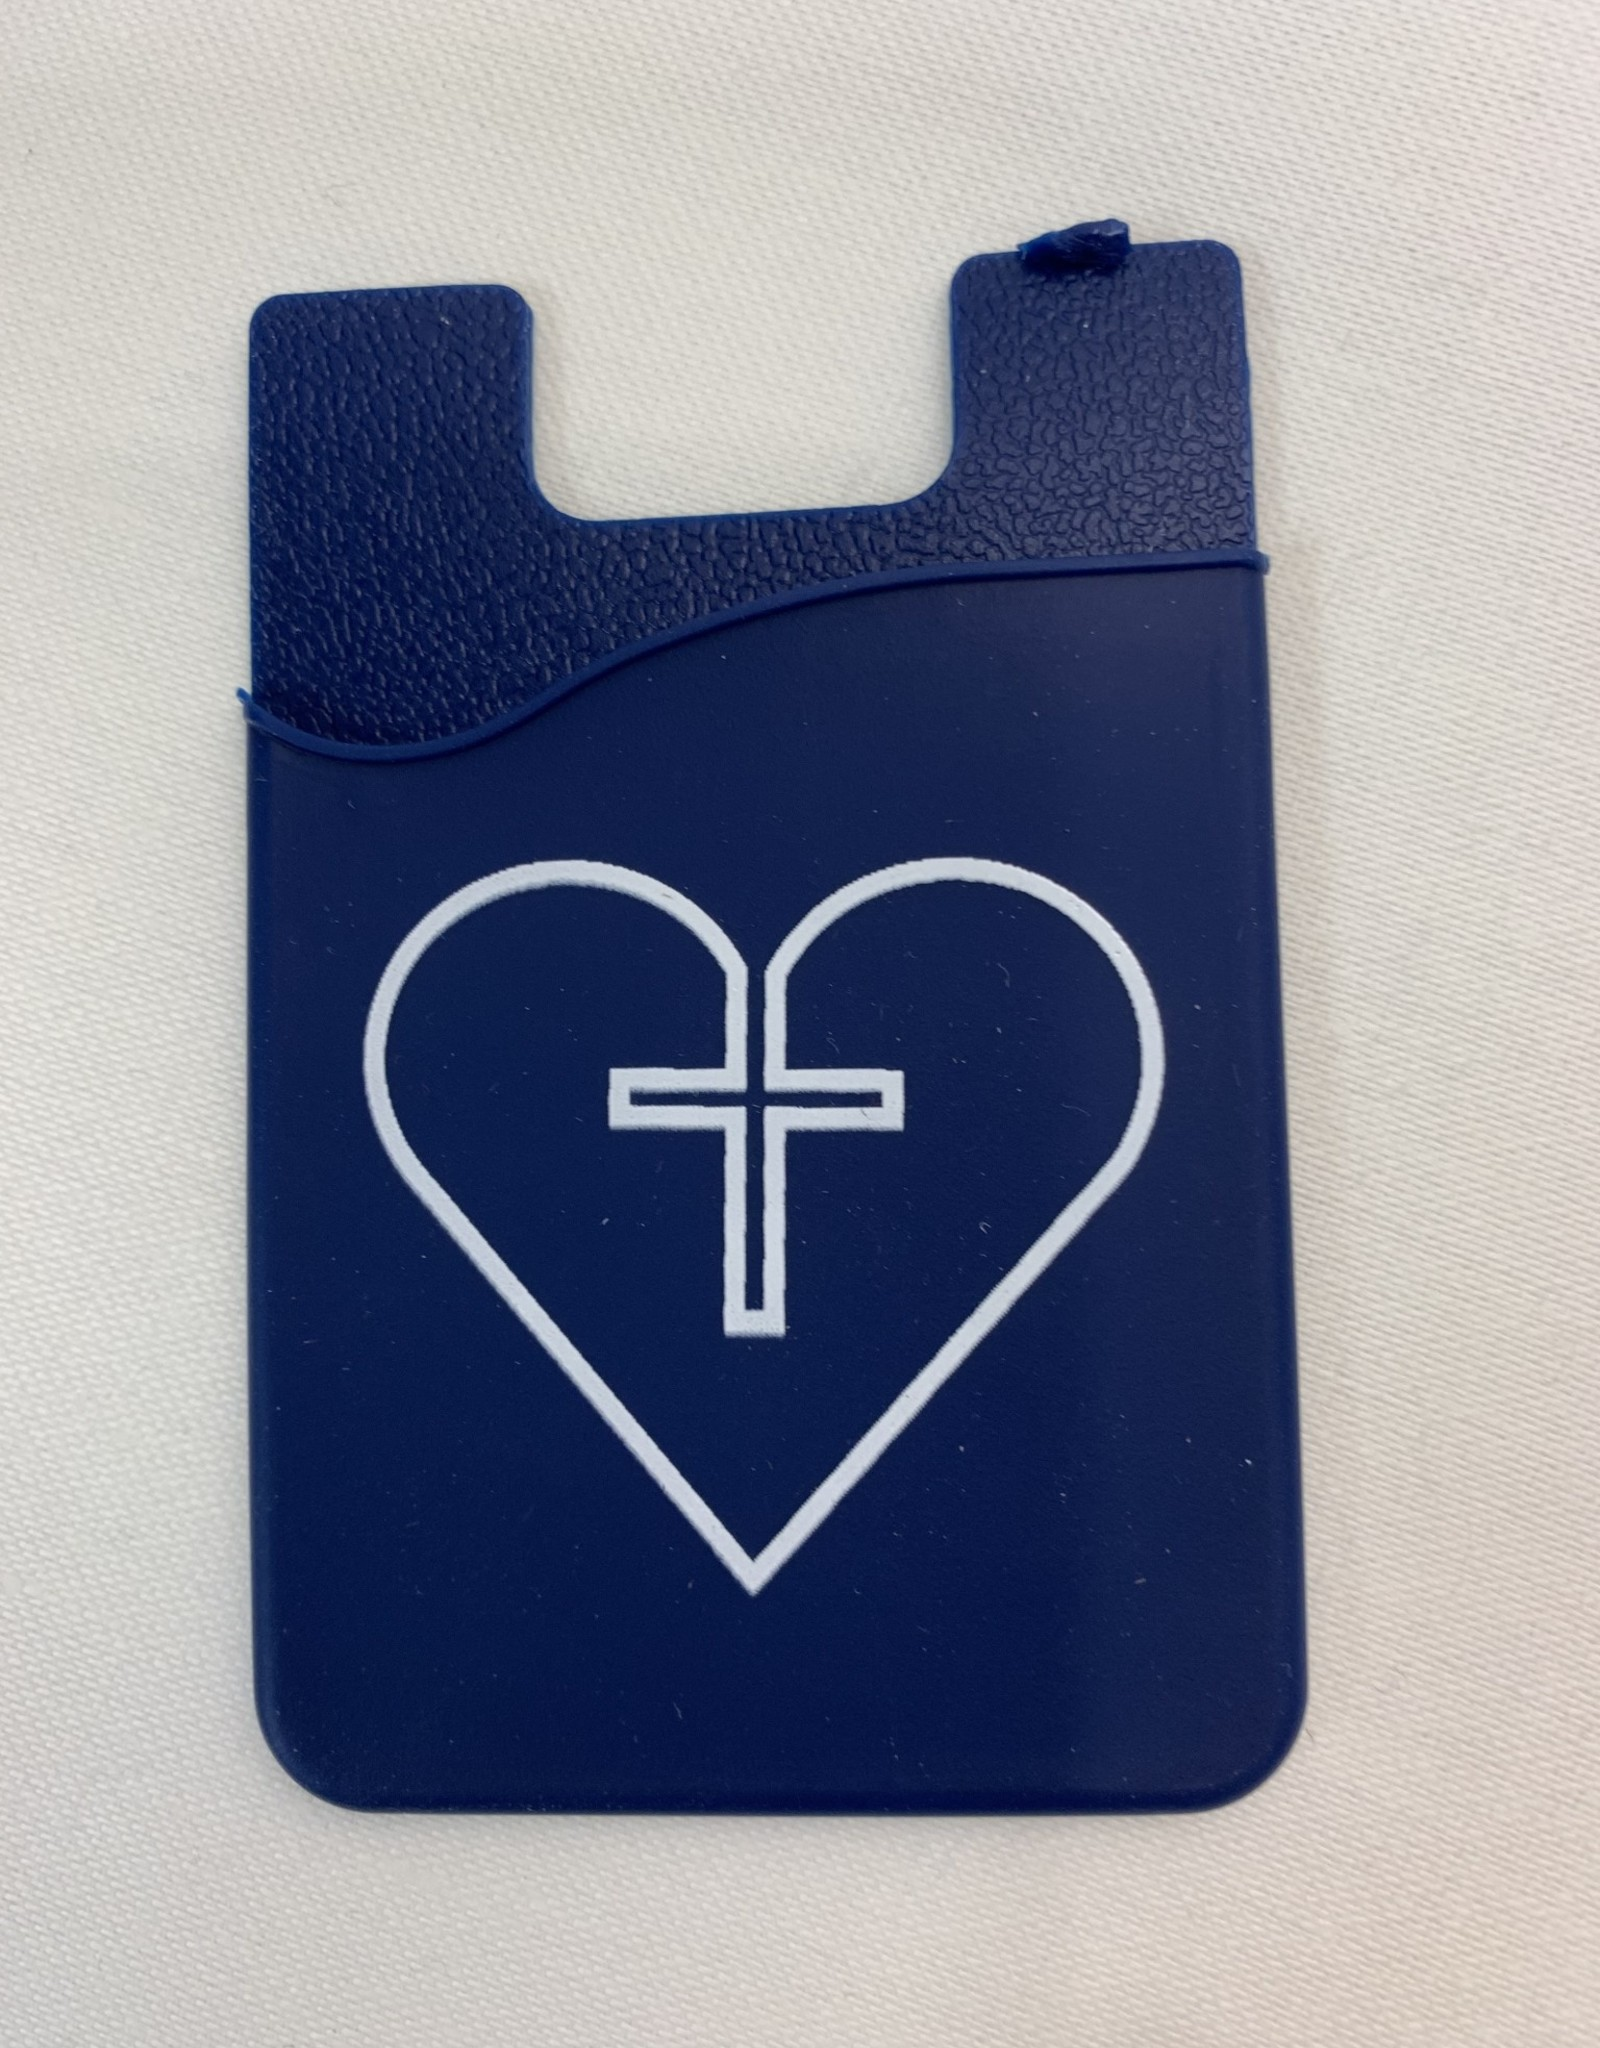 CELL PHONE iWALLET NAVY